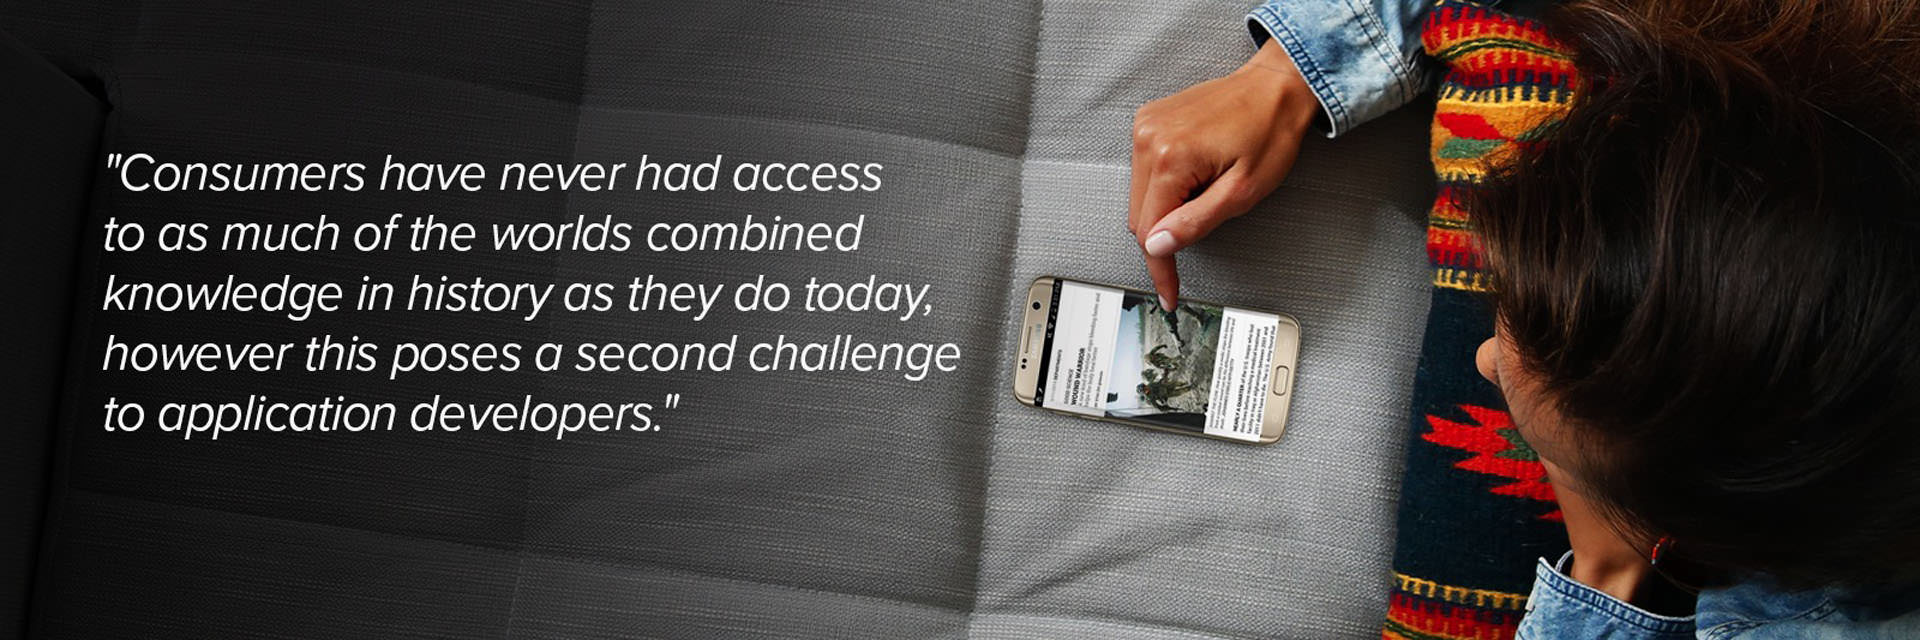 Rethinking Content Delivery for a Mobile-Centric World